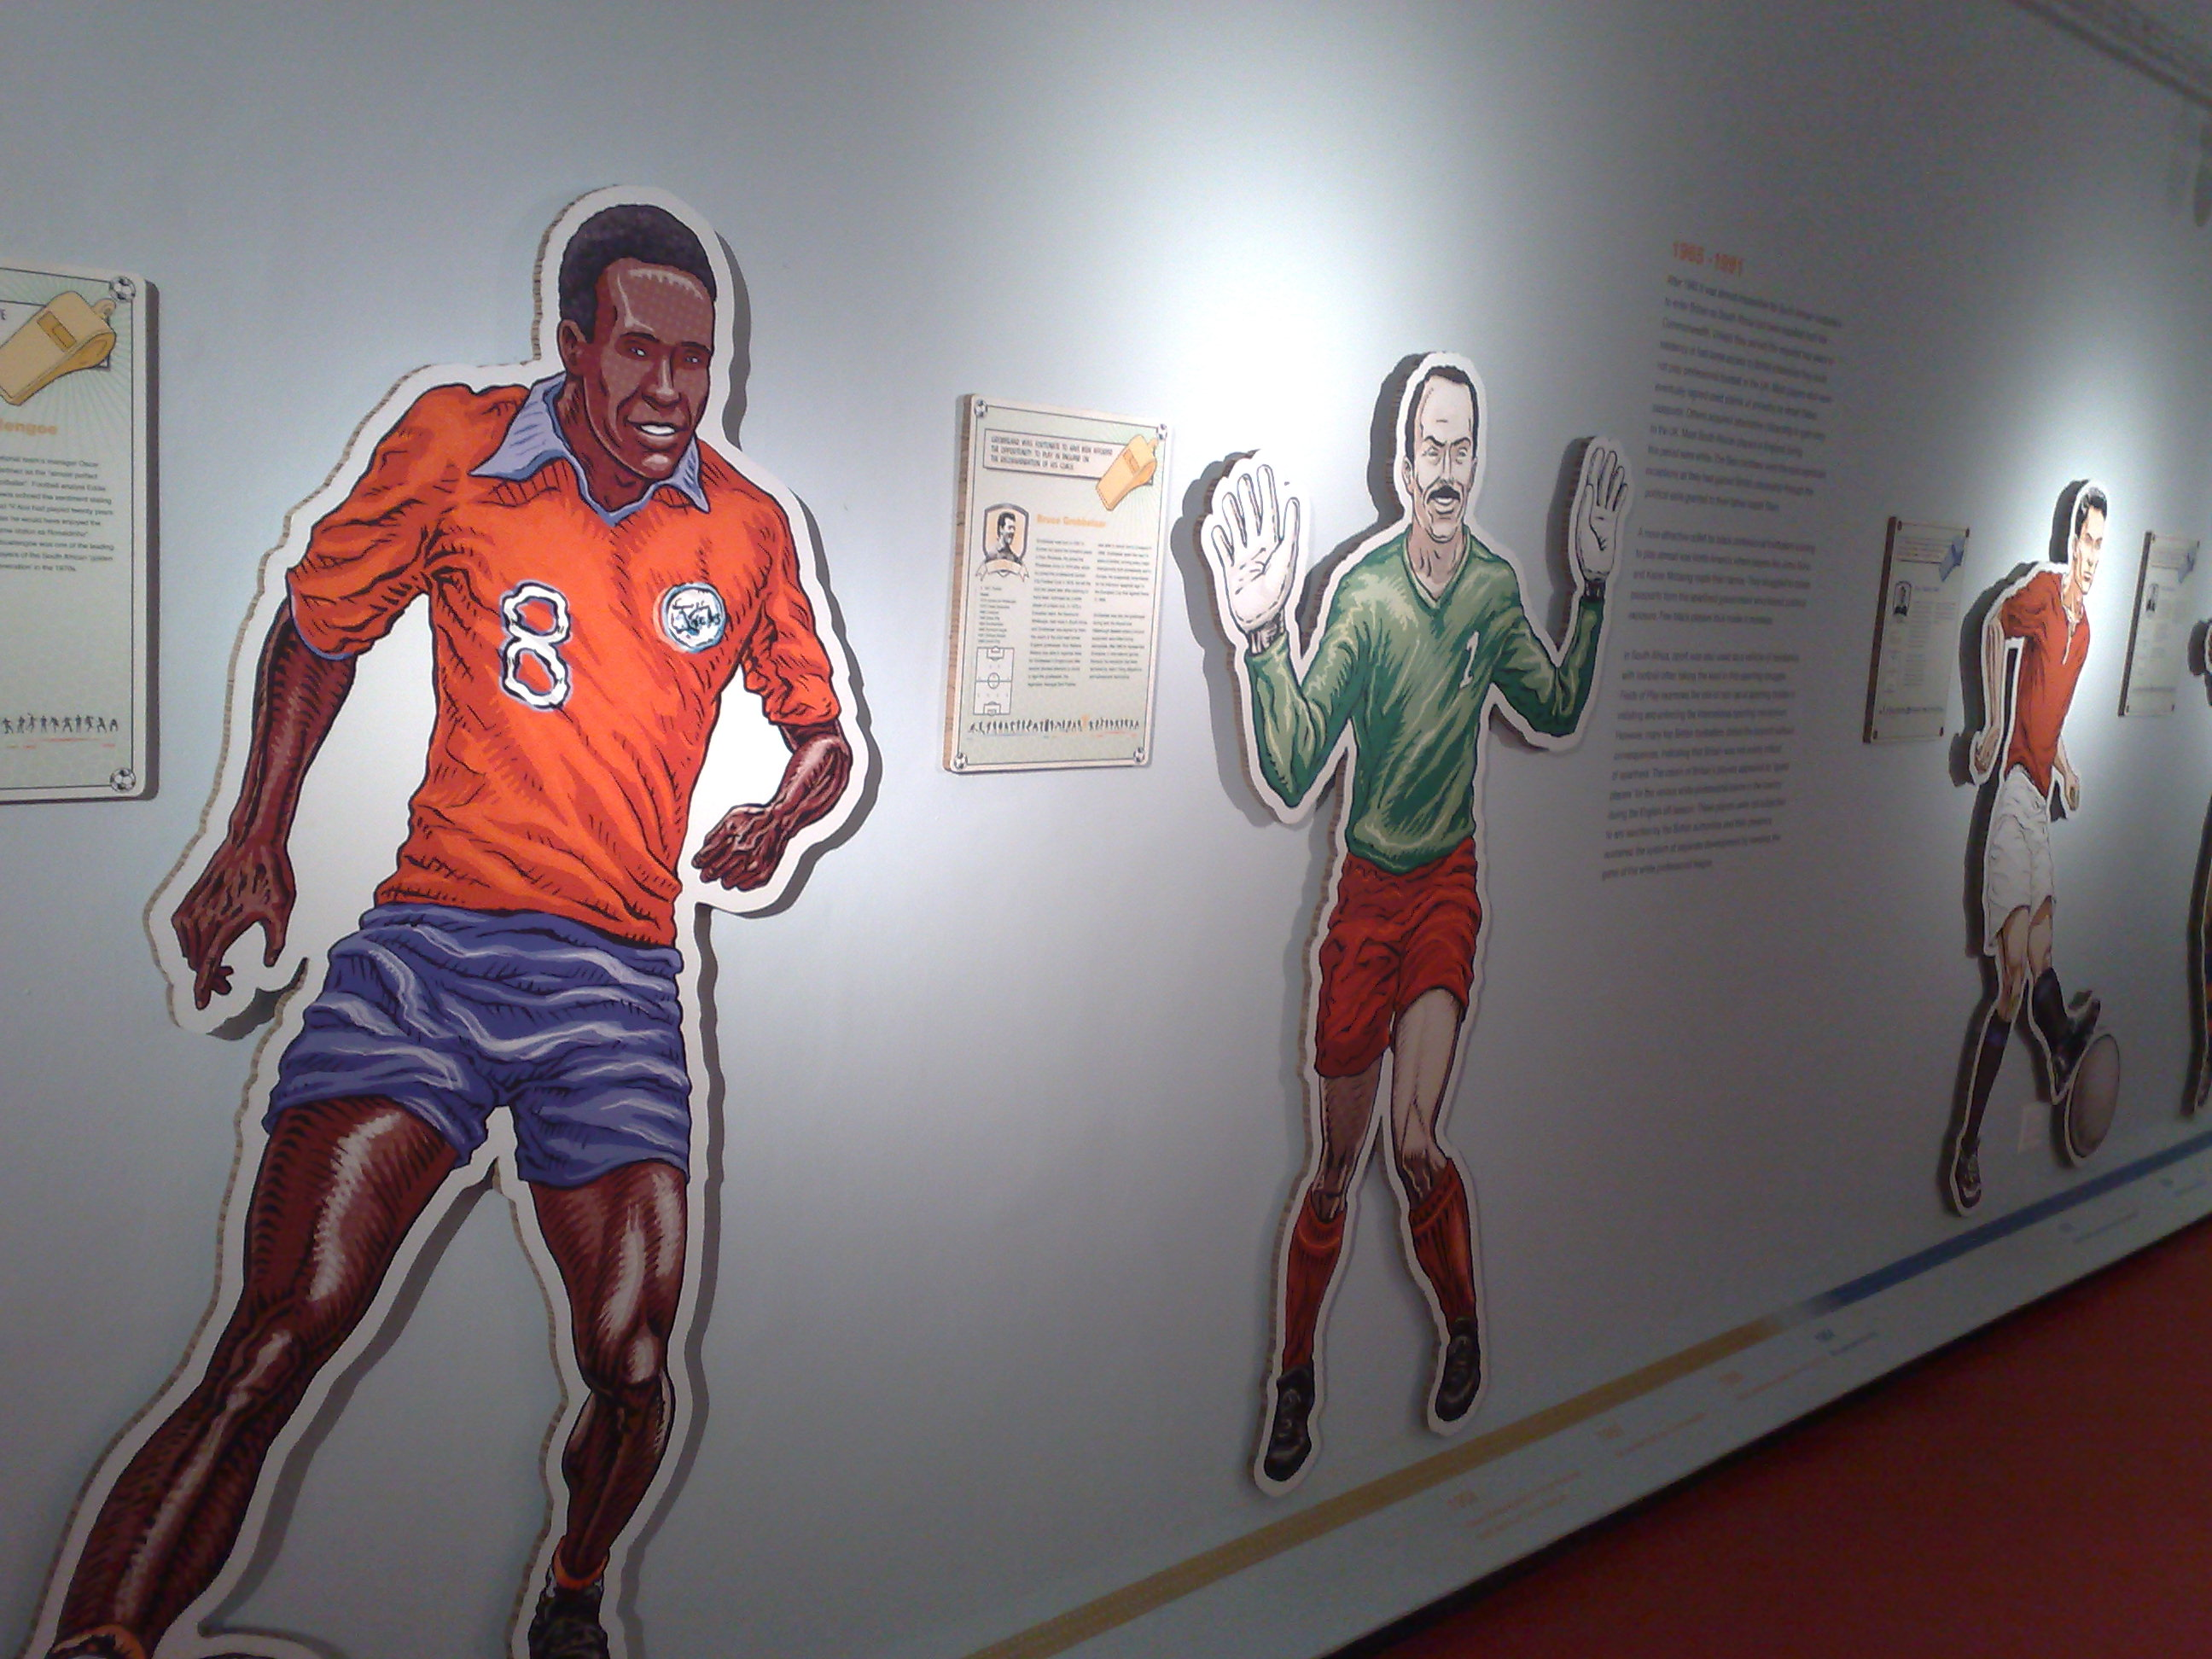 Offside exhibition - Offside exhibition at the District Six Museum, Cape Town.